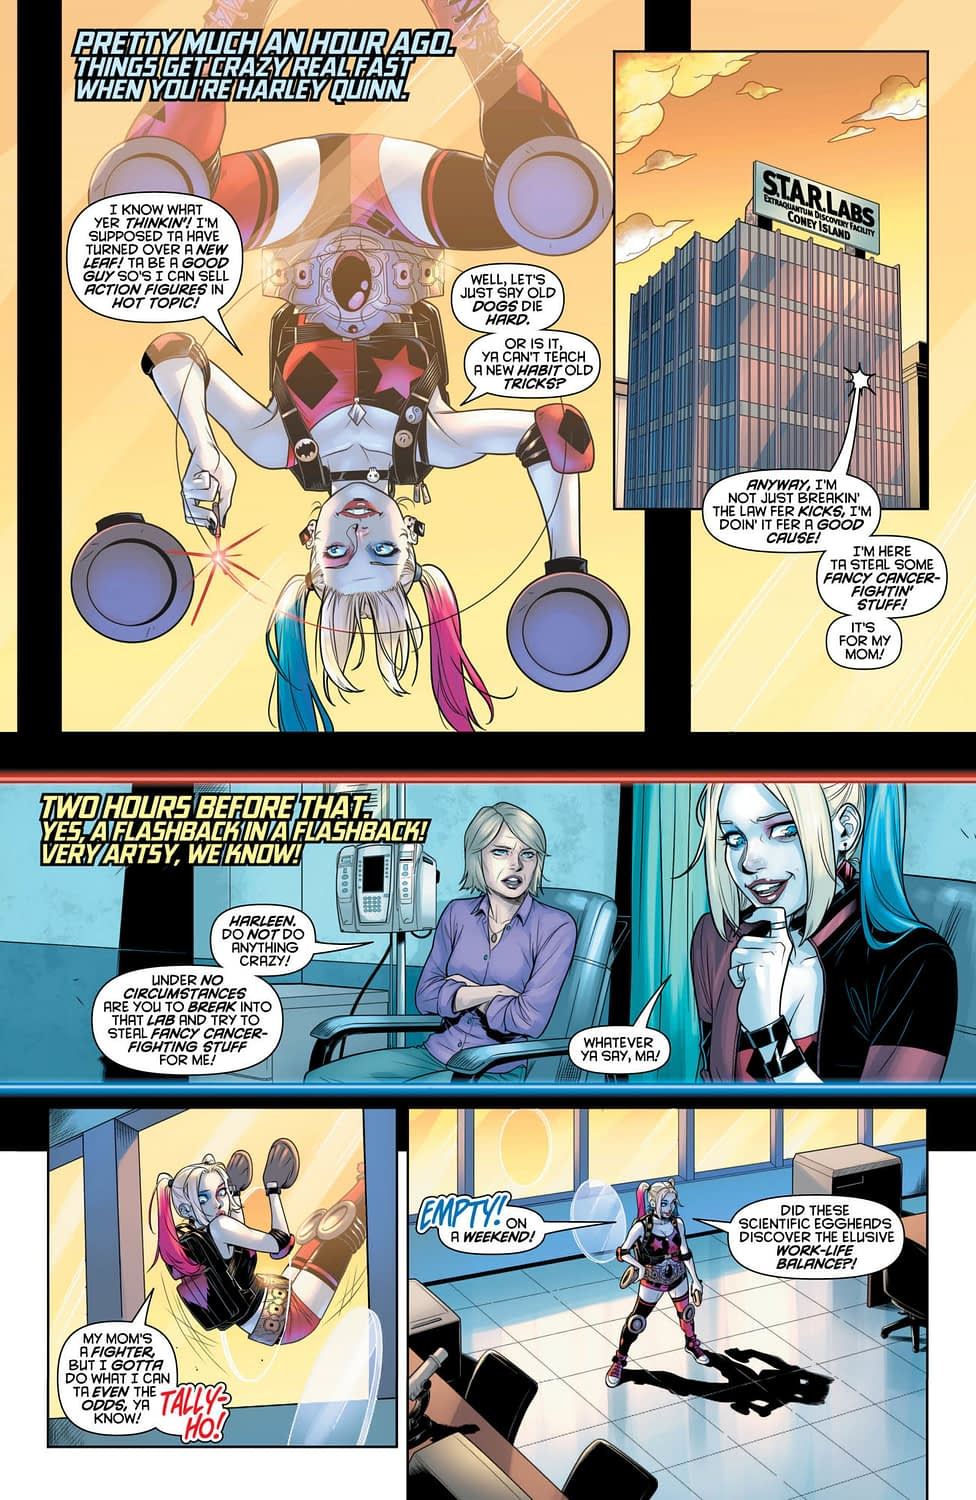 Can Harley Find a Cure for Cancer in Tomorrow's Harley Quinn #60?